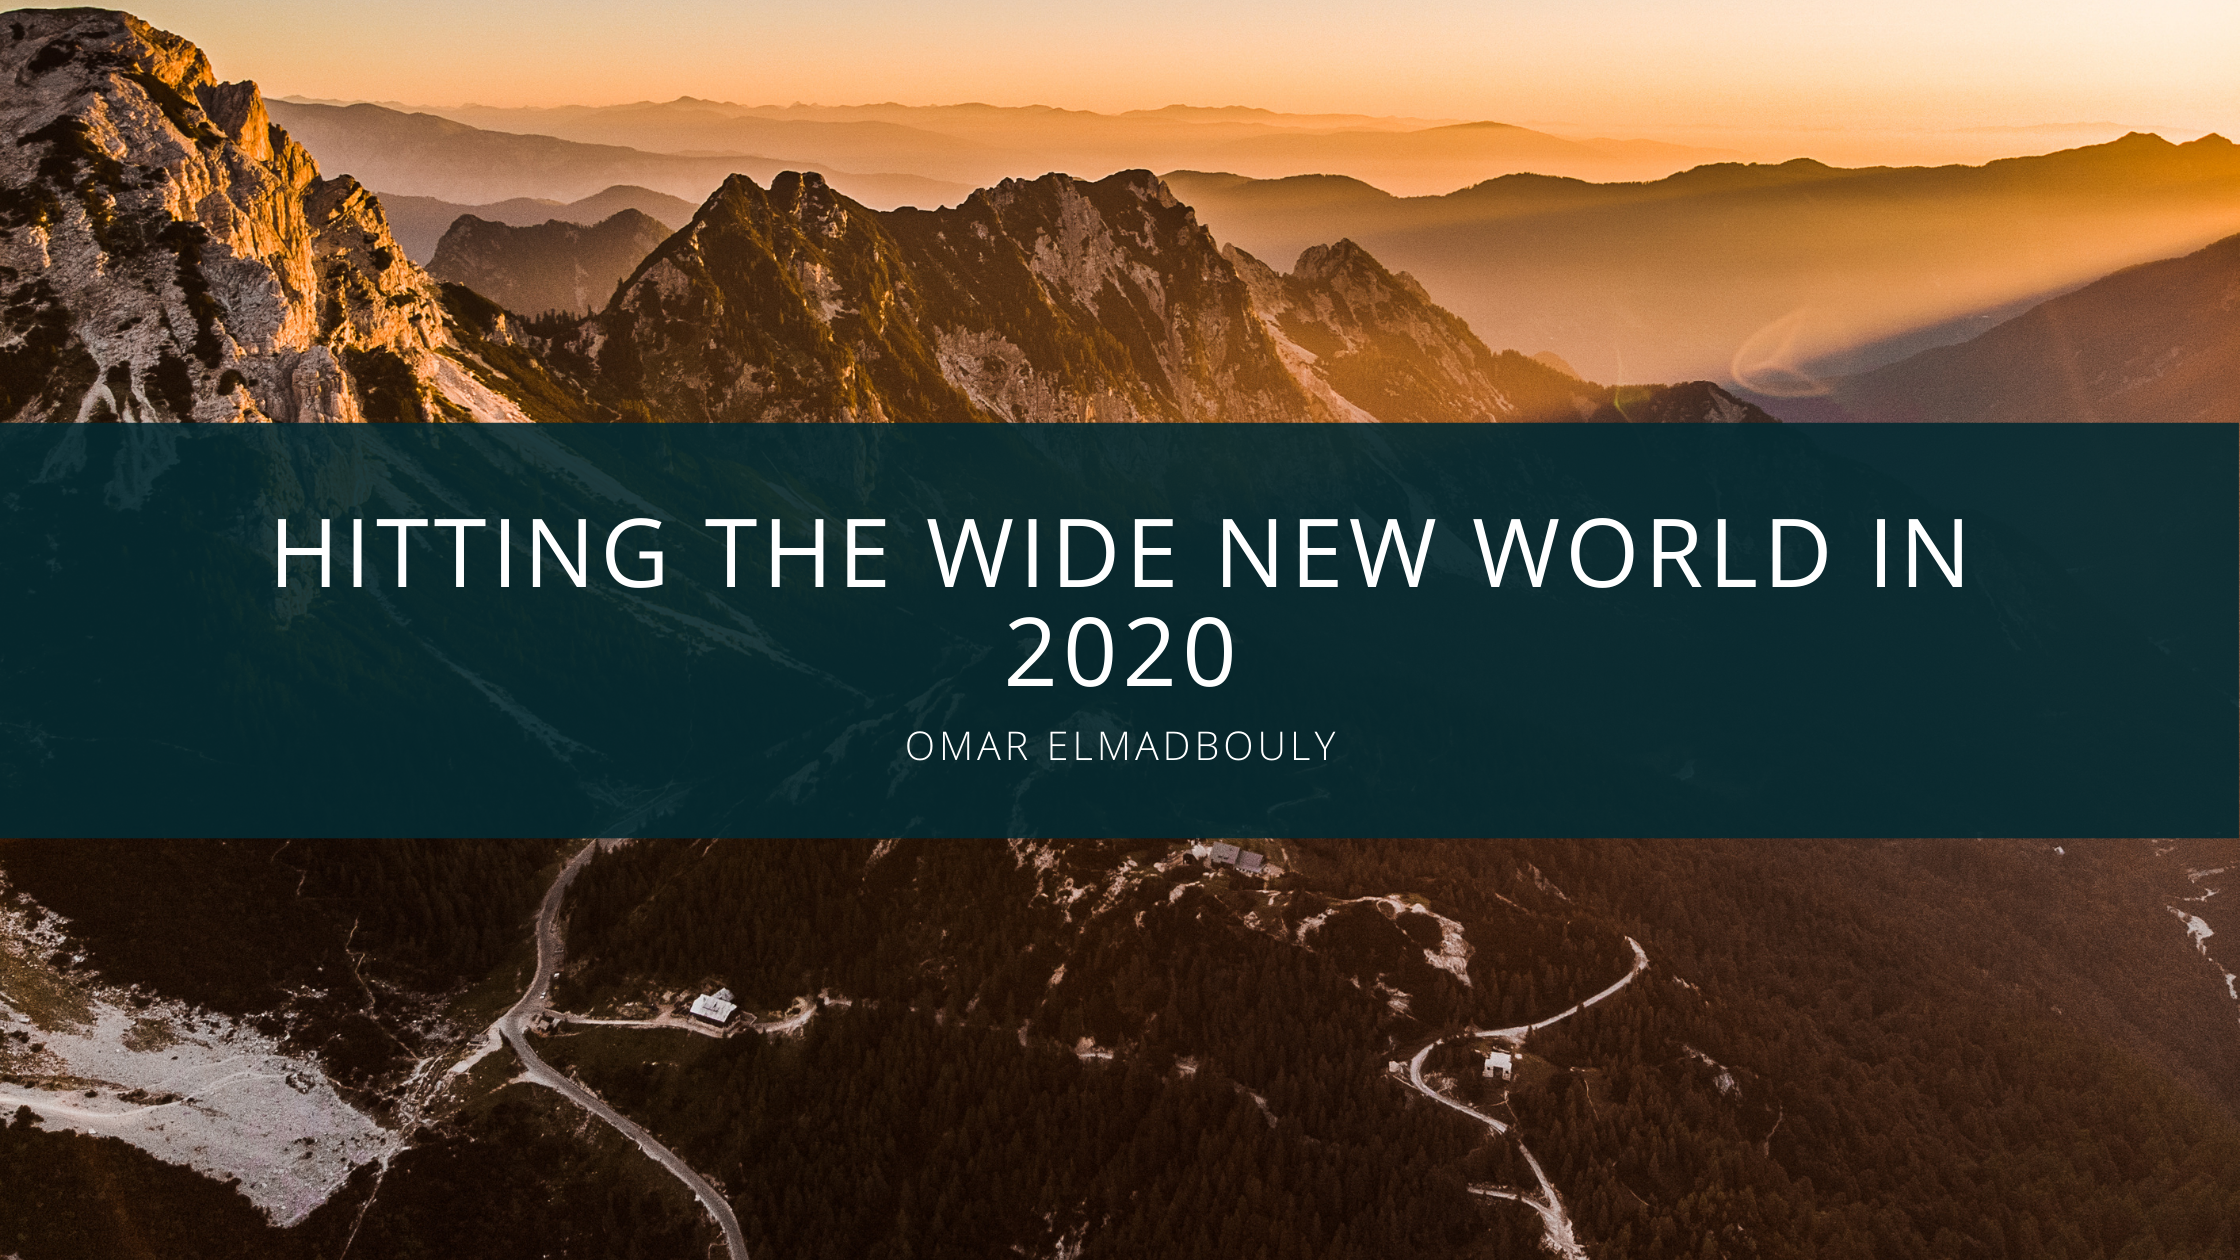 Hitting the Wide New World in 2020